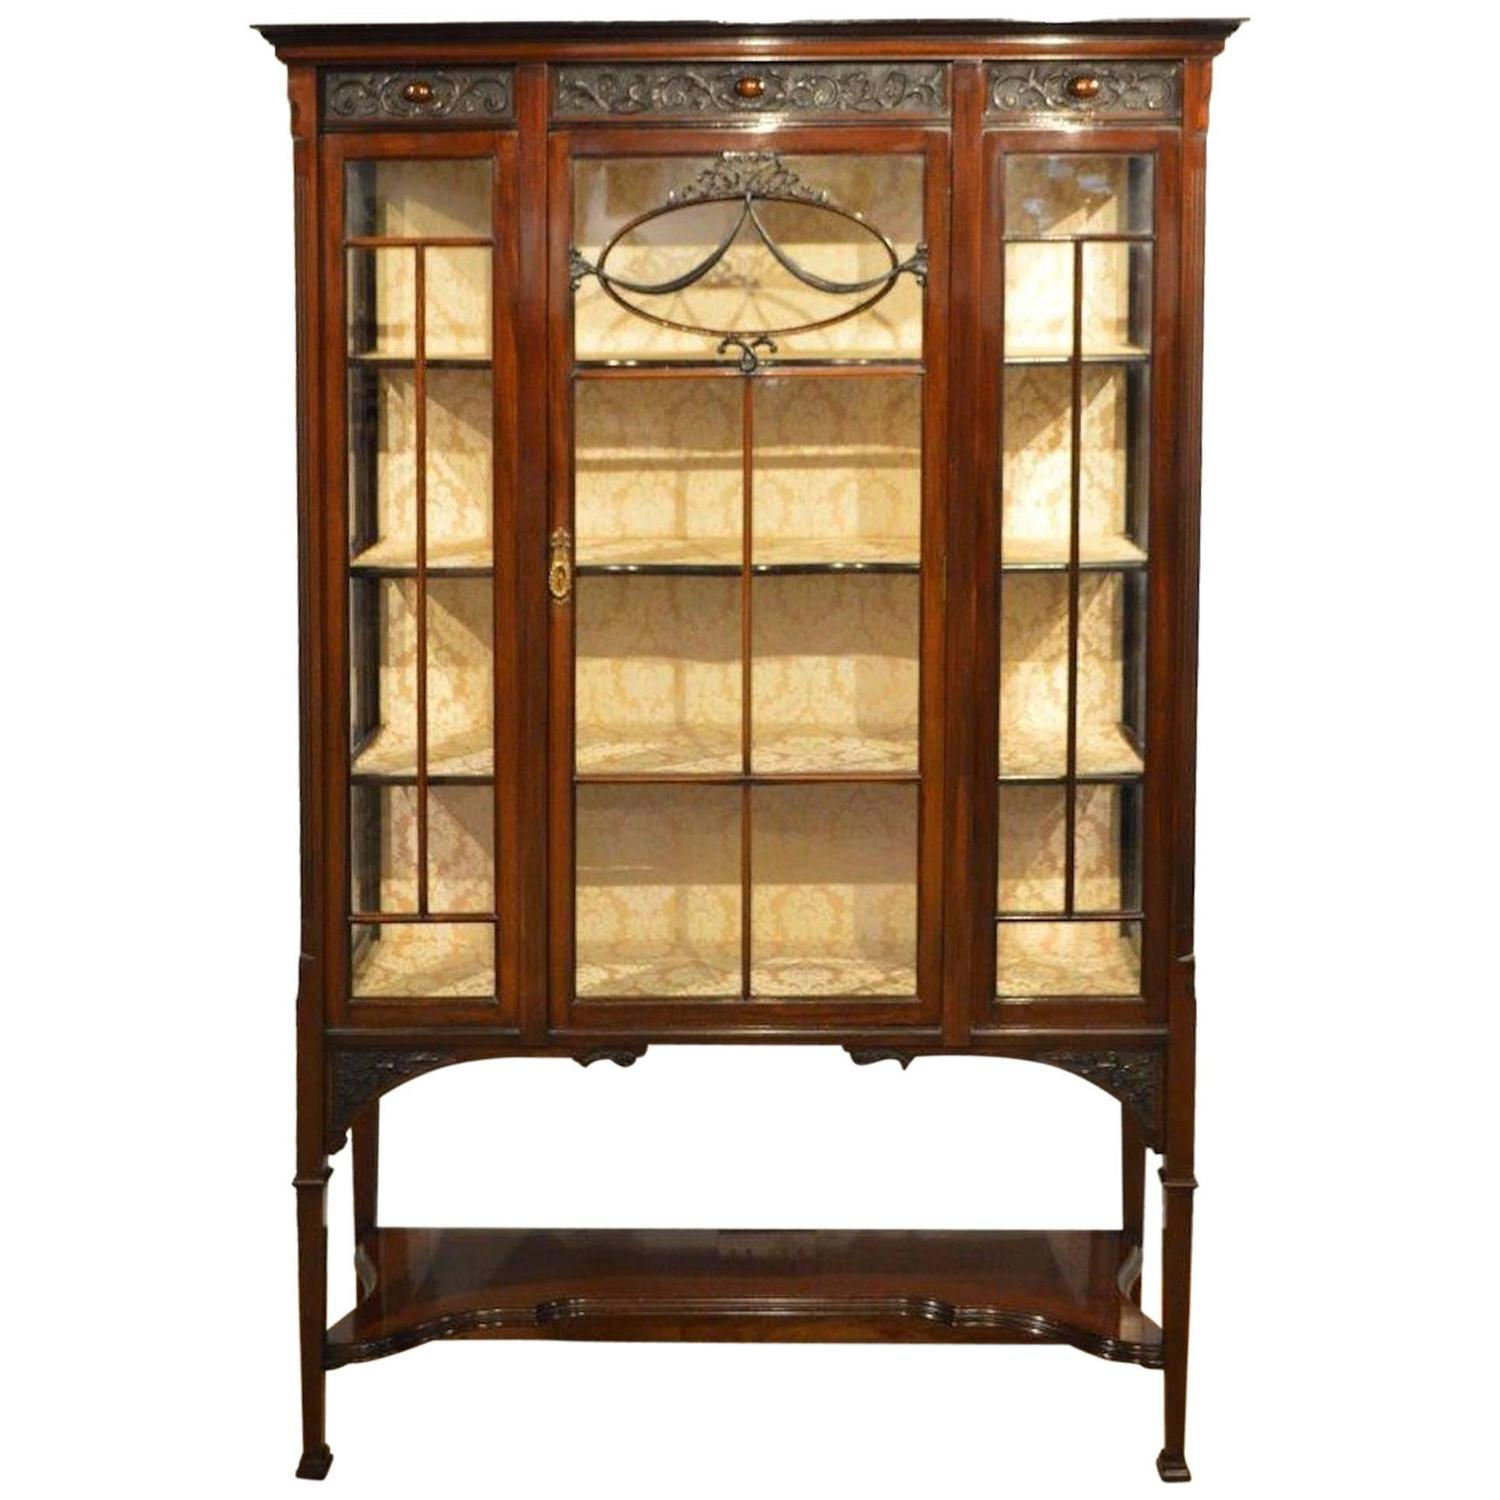 Fine quality mahogany edwardian period antique china for Antique display cabinet